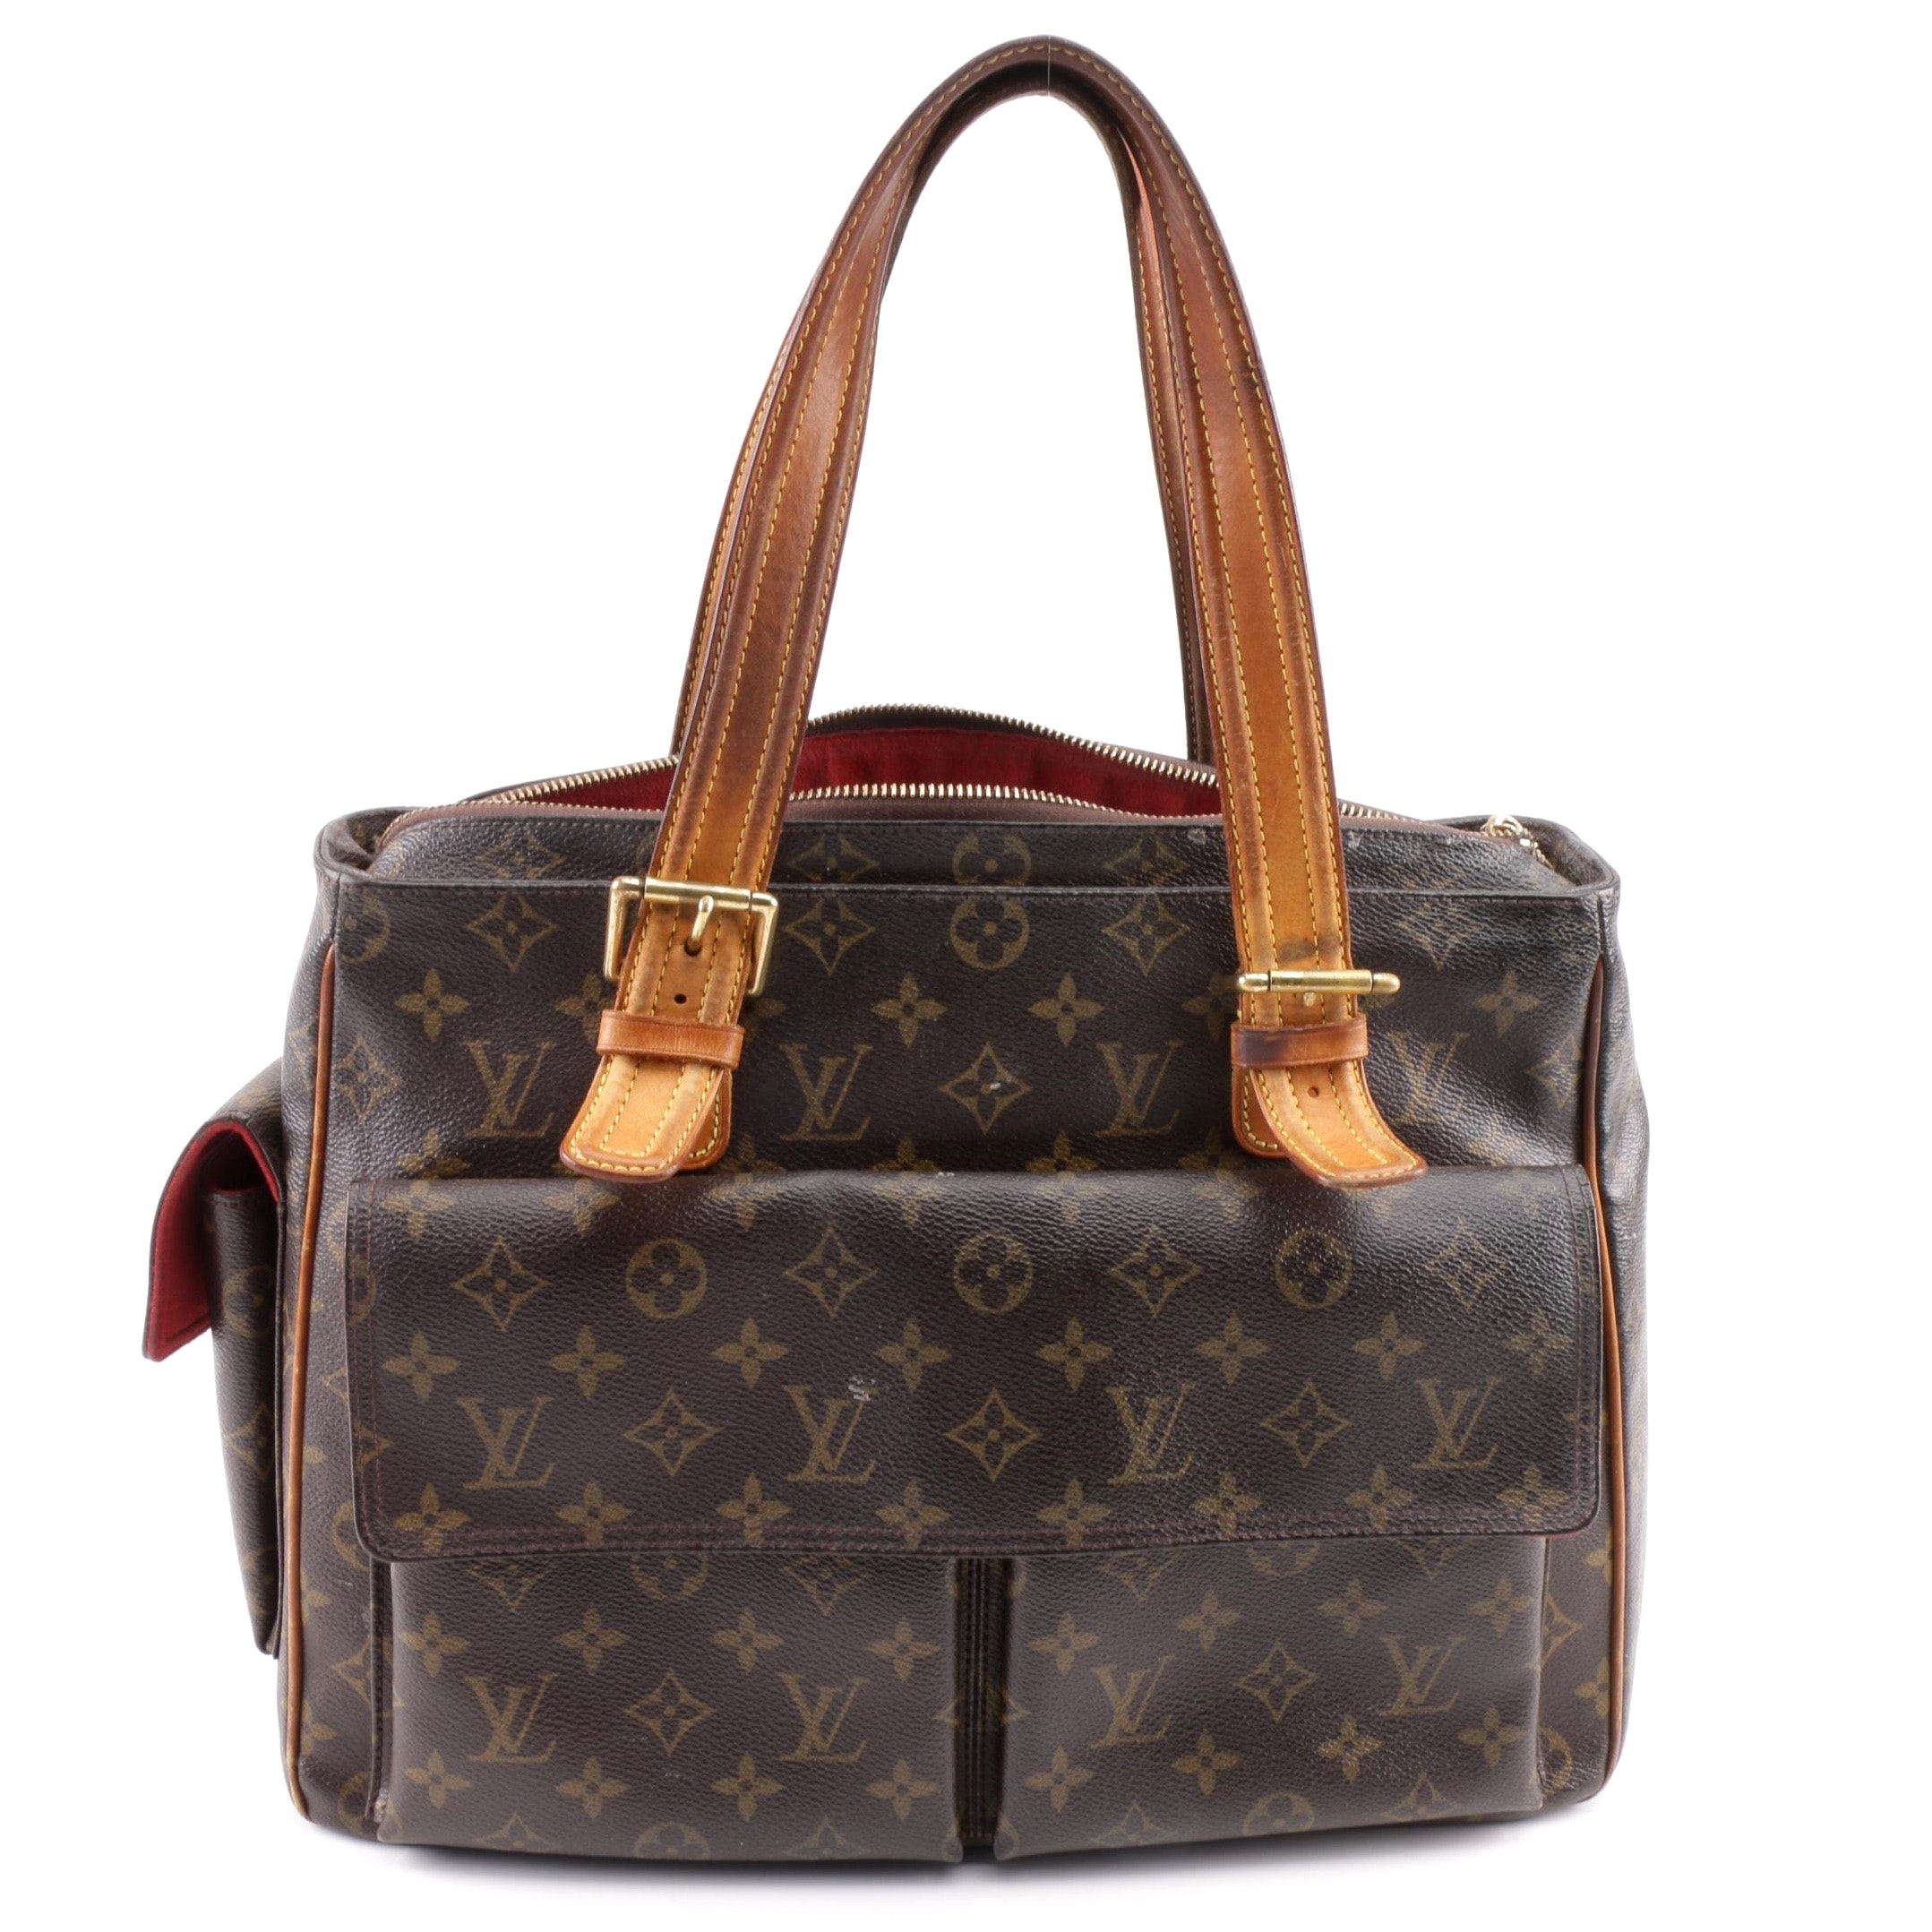 Louis Vuitton Monogram Multipli Cite Handbag